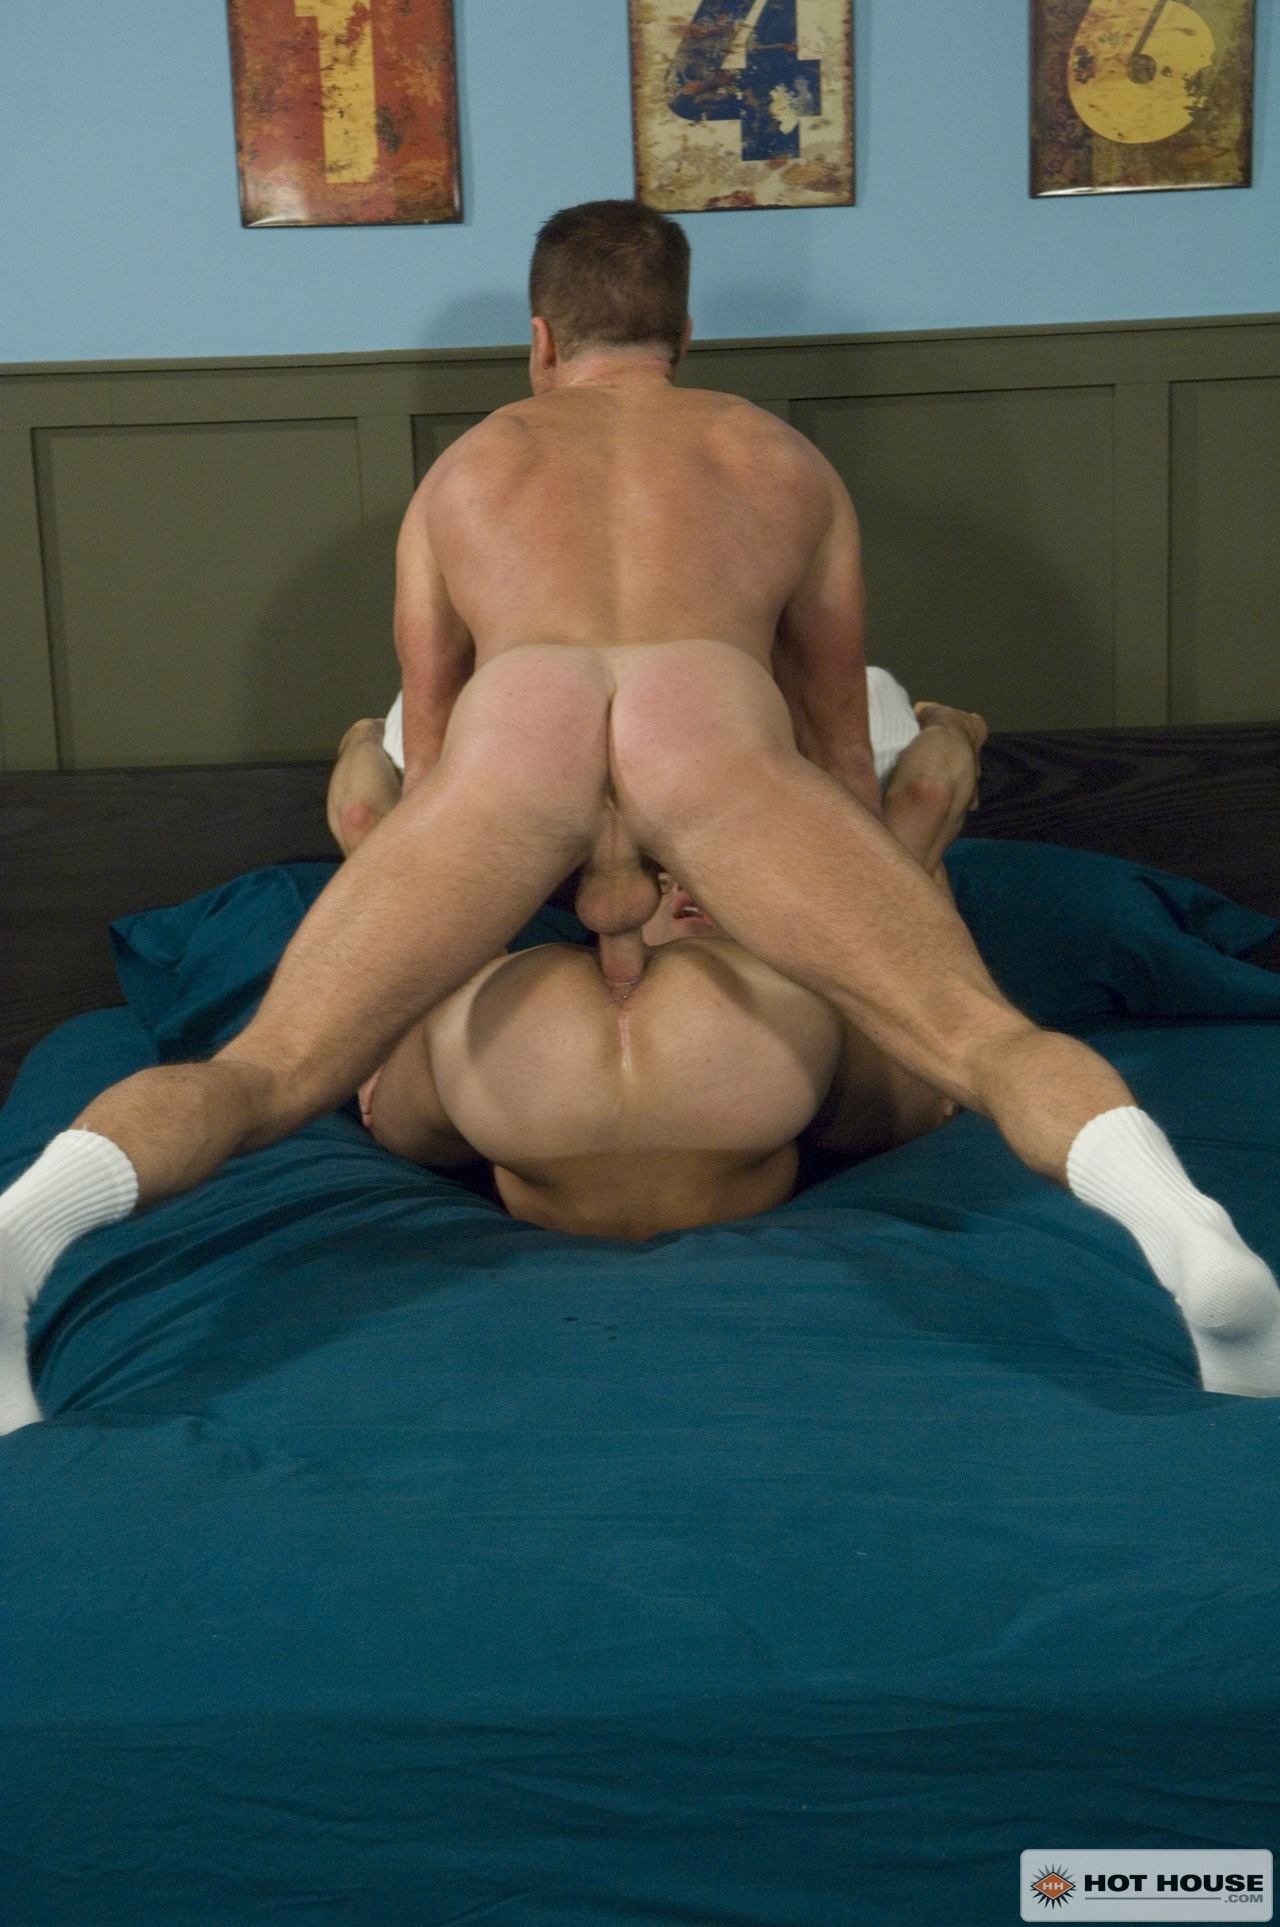 Free gay porn king sex movies these stud 2